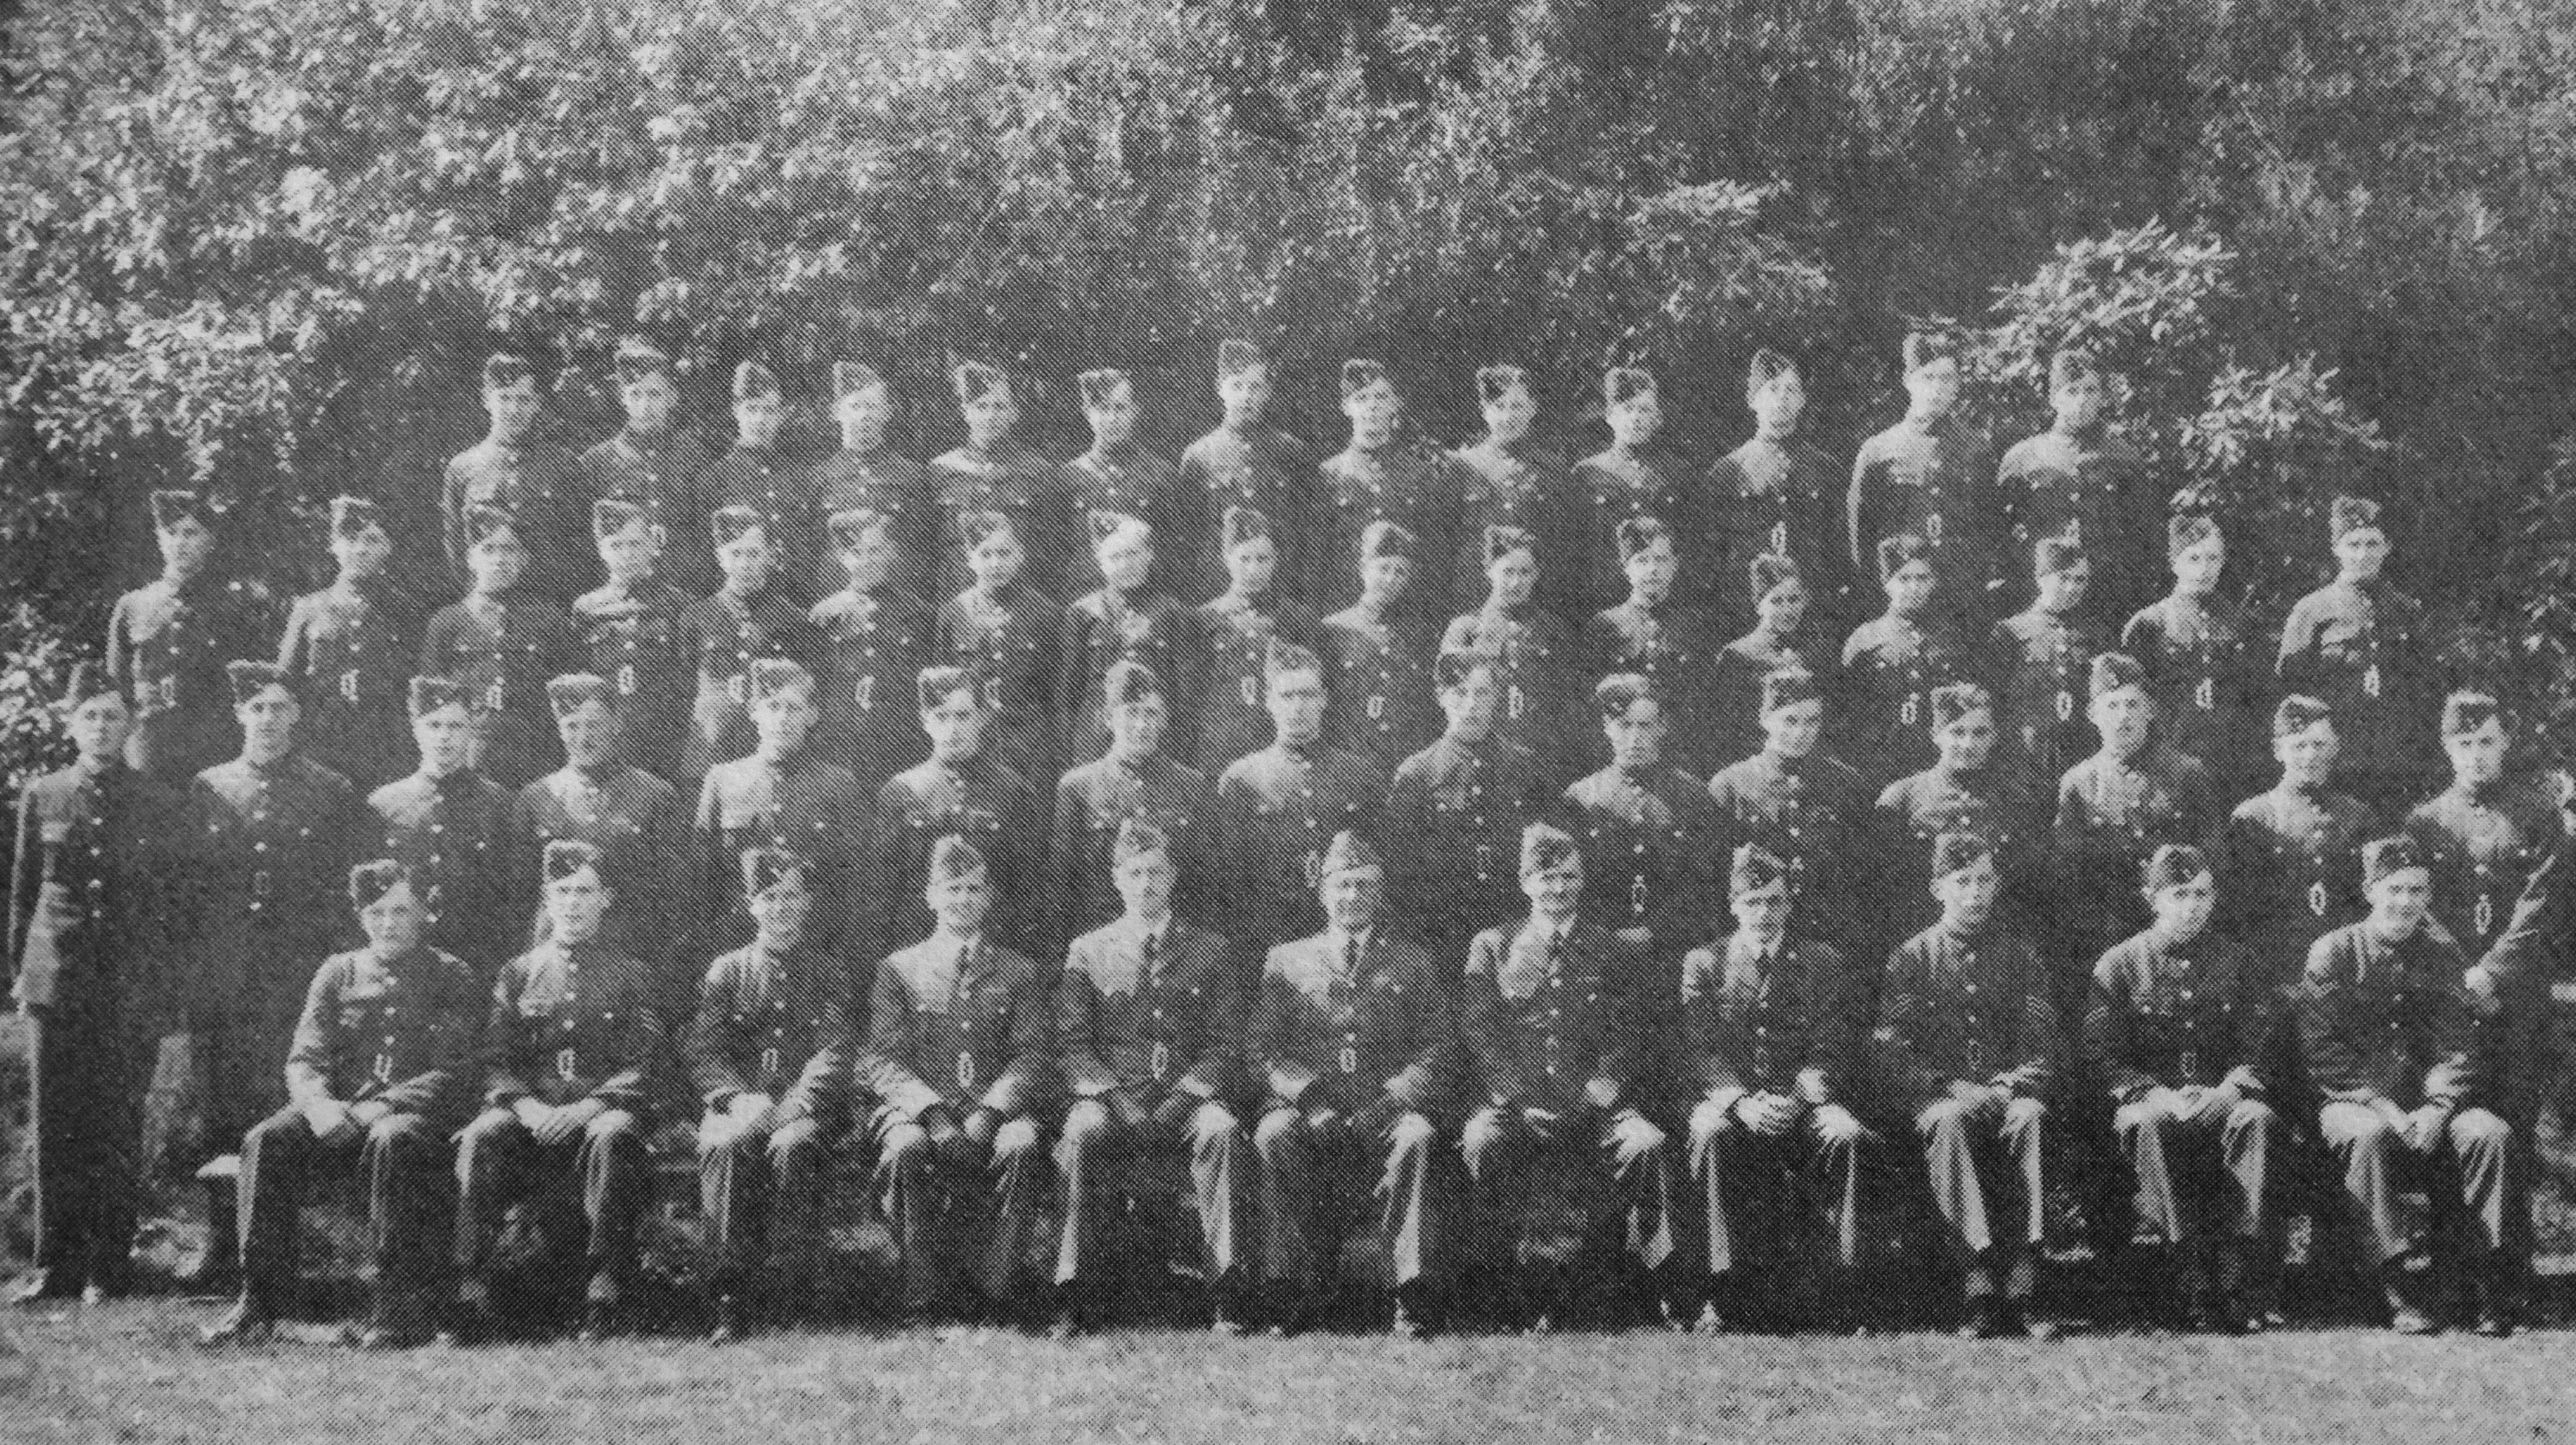 'B' Flight 1414 Squadron taken in 1942. This is the earliest known photograph of our Squadron.